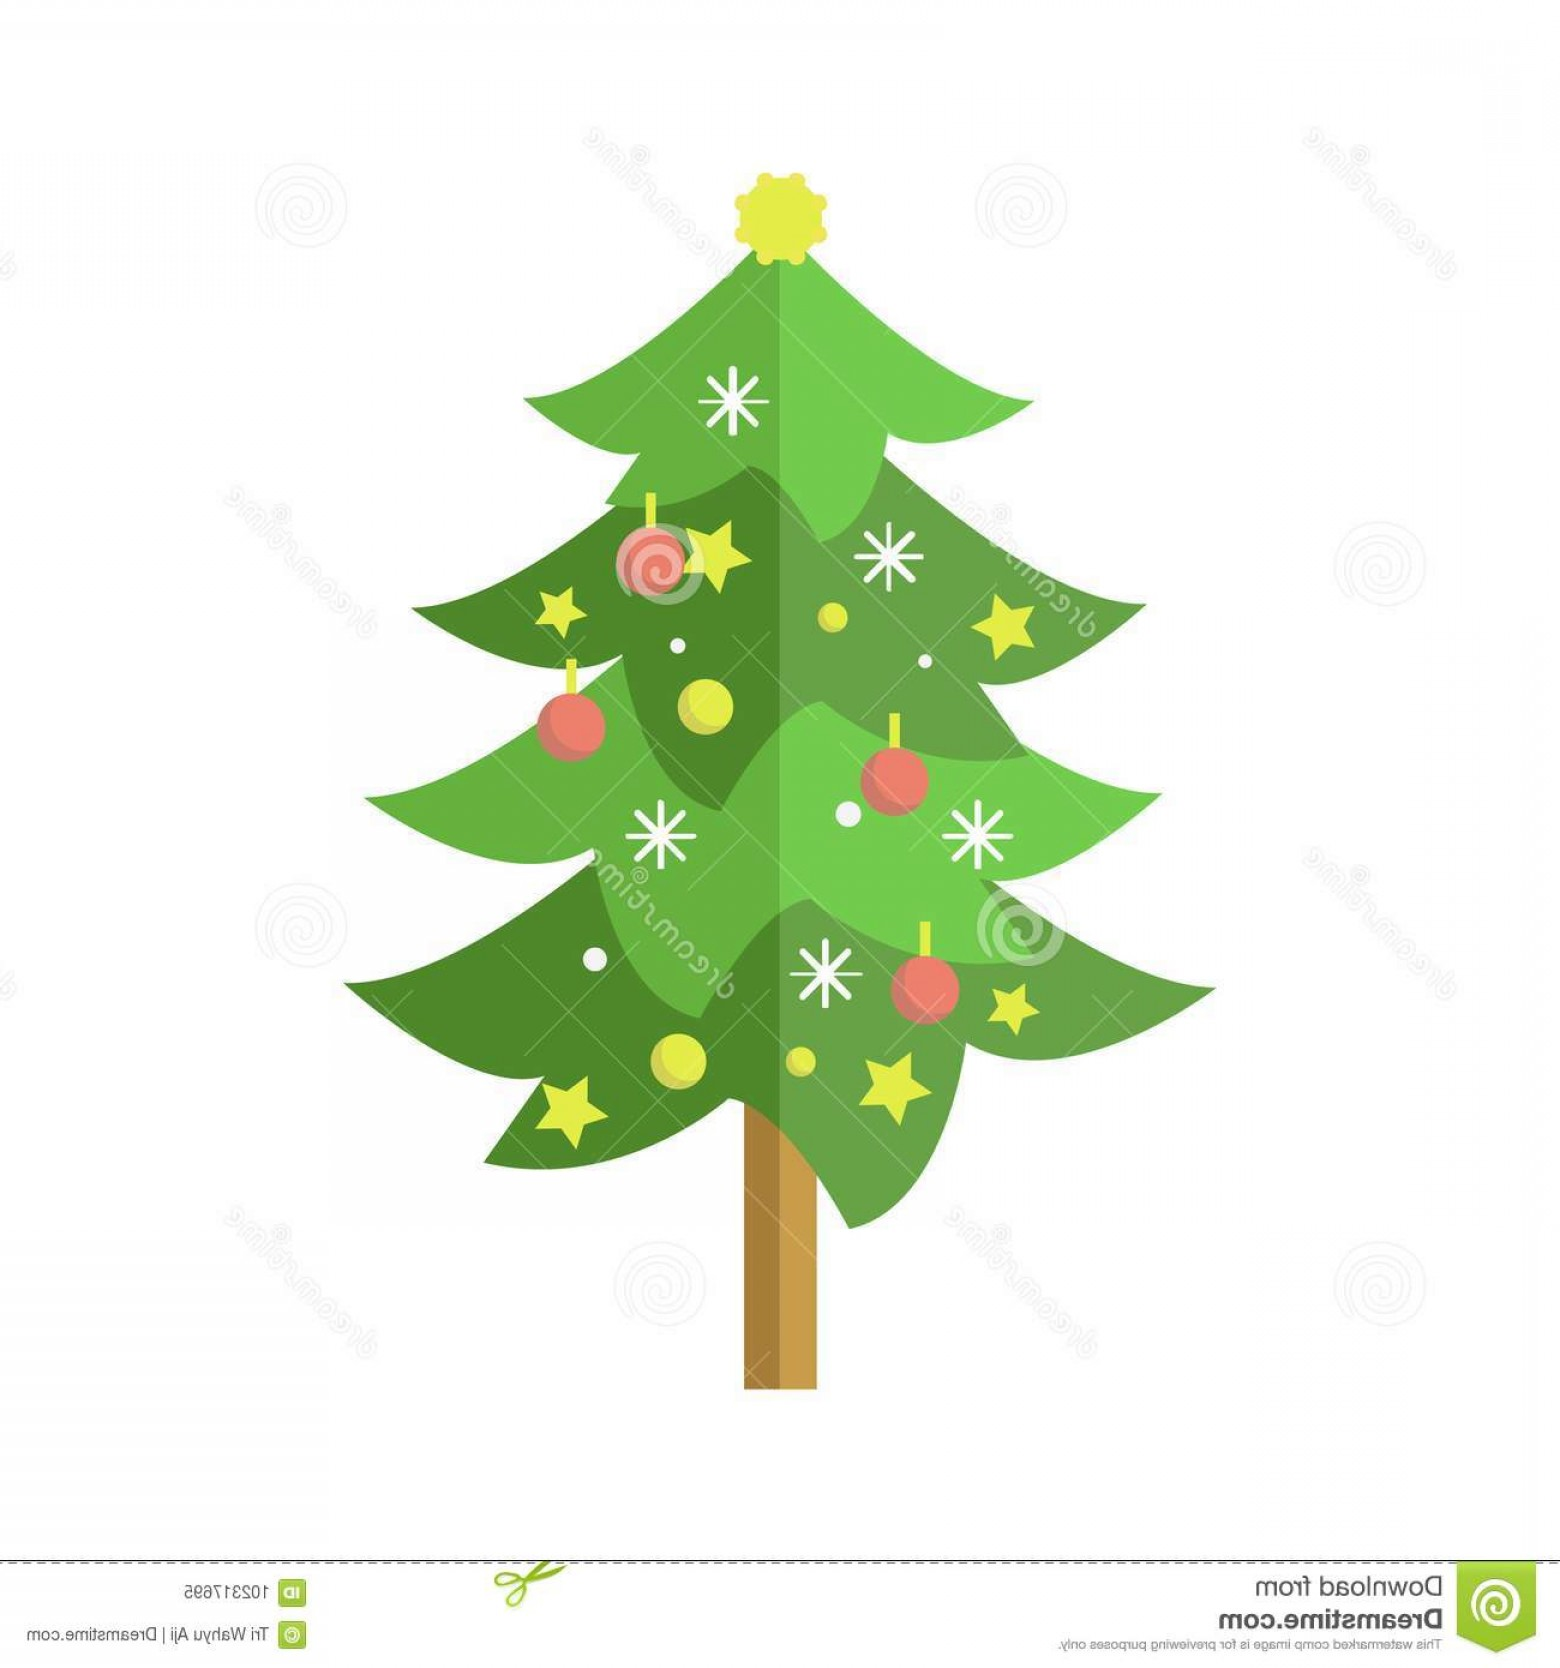 Christmas Pine Tree Vector Art: Flat Decorated Cartoon Christmas Pine Tree Christmas Tree Illustration Vector Graphic Image